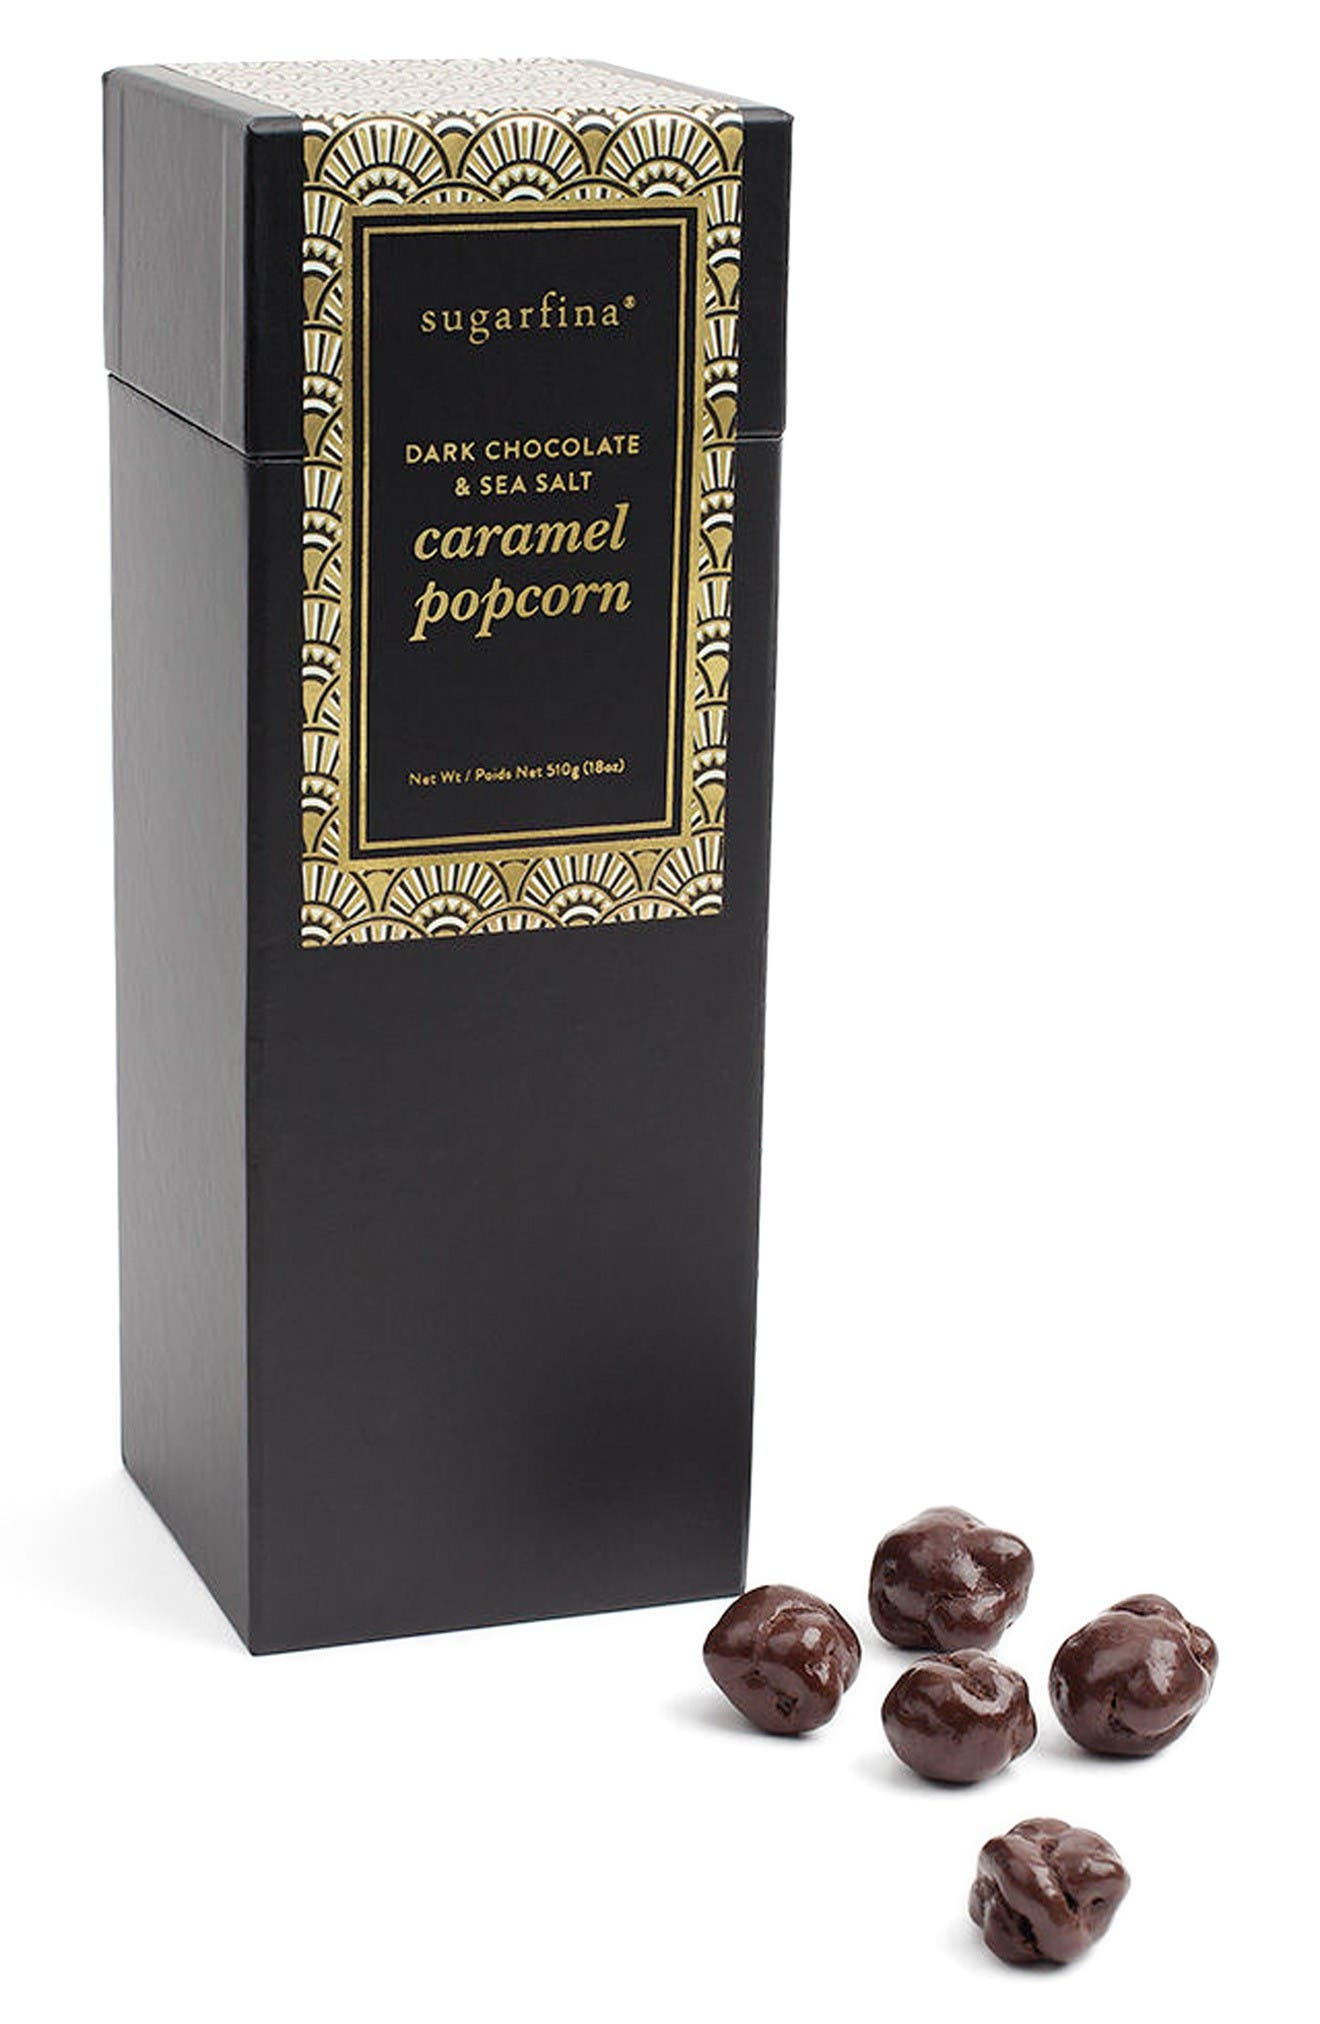 Main Image - sugarfina Dark Chocolate & Sea Salt Caramel Popcorn